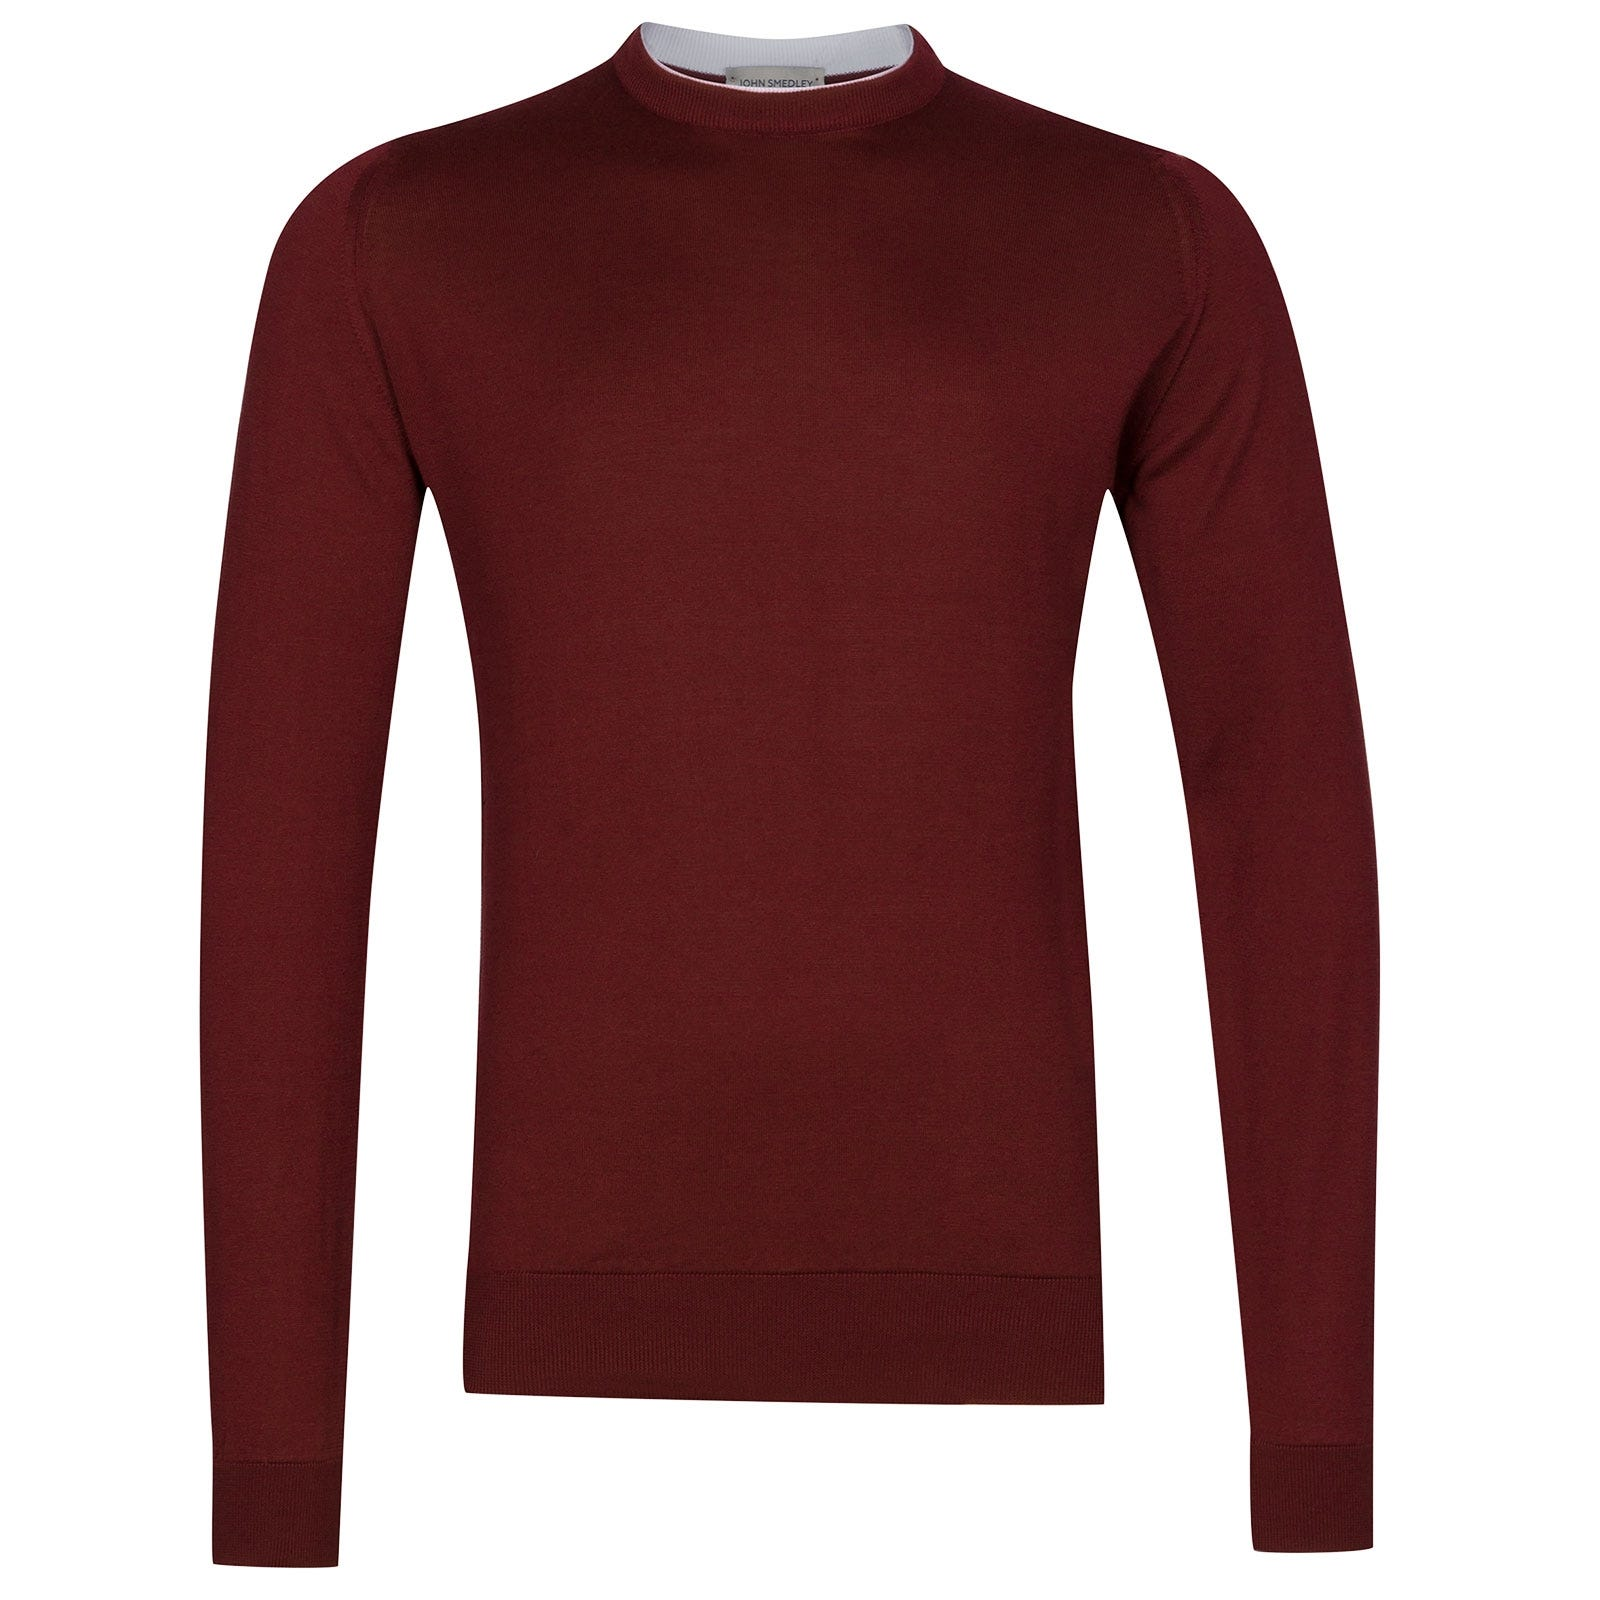 John Smedley Rodney Sea Island Cotton Pullover in Burgundy Grain-L